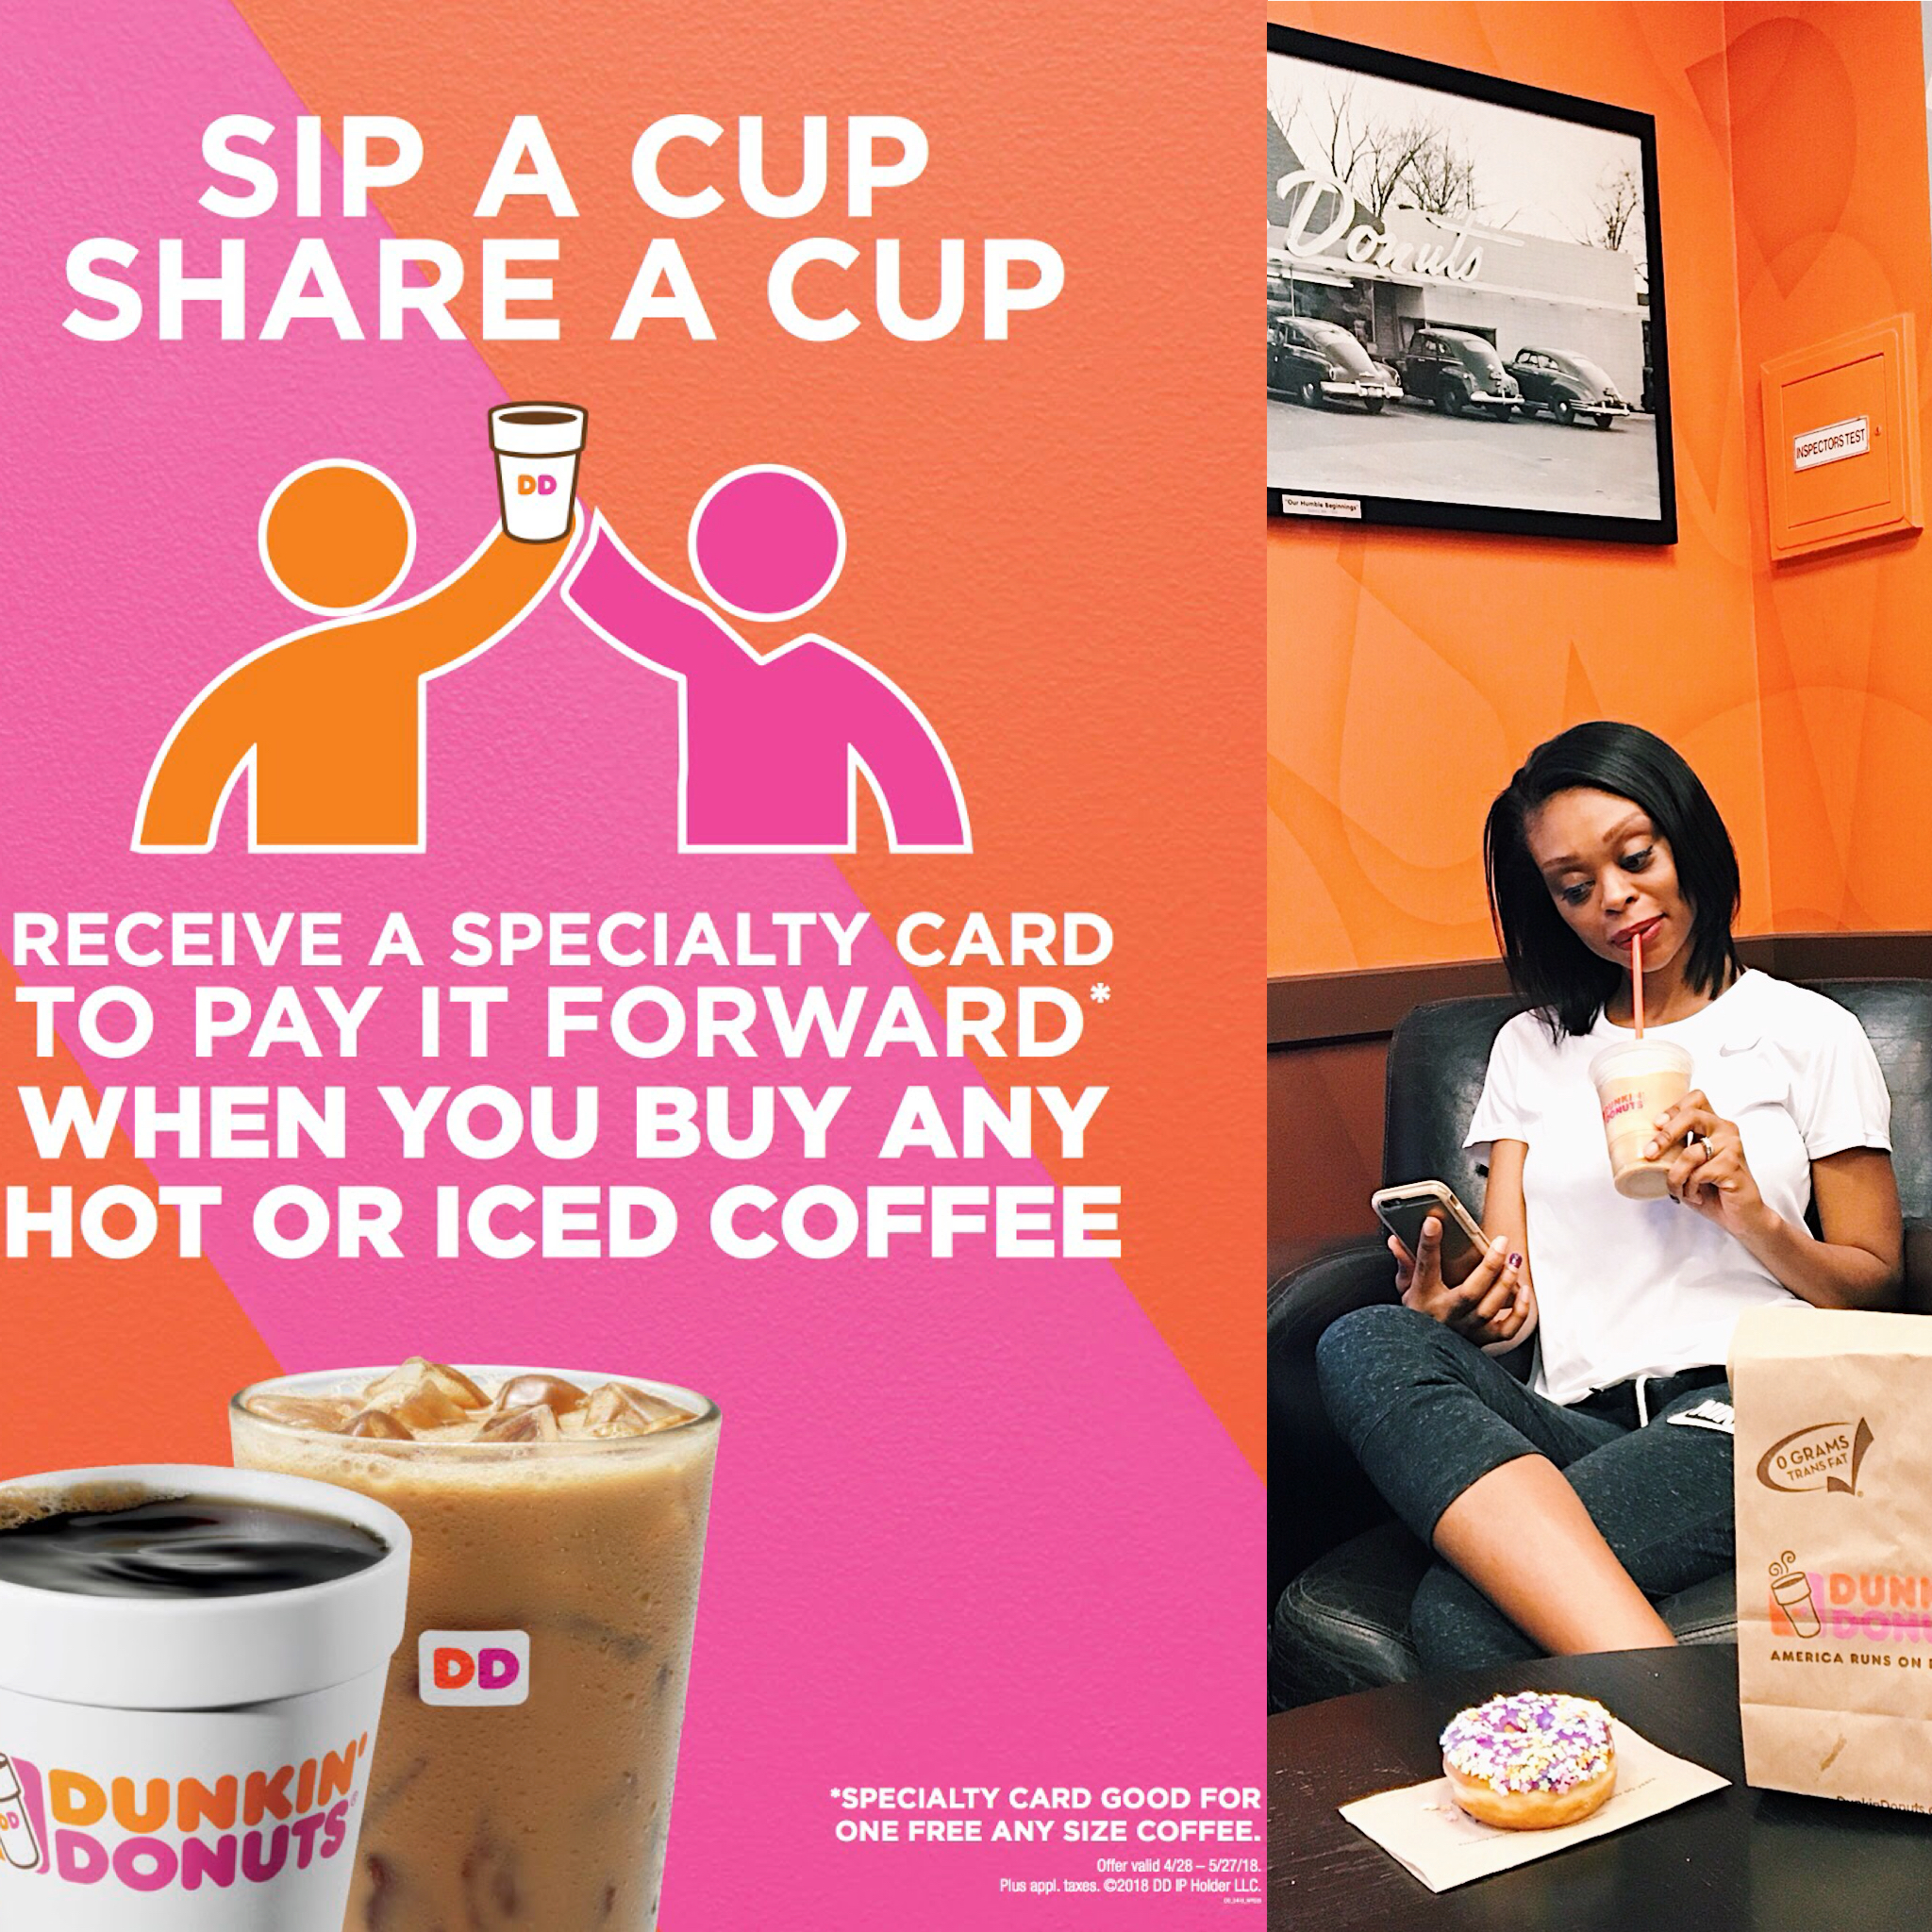 Dunkin' Donuts: Pay It Forward